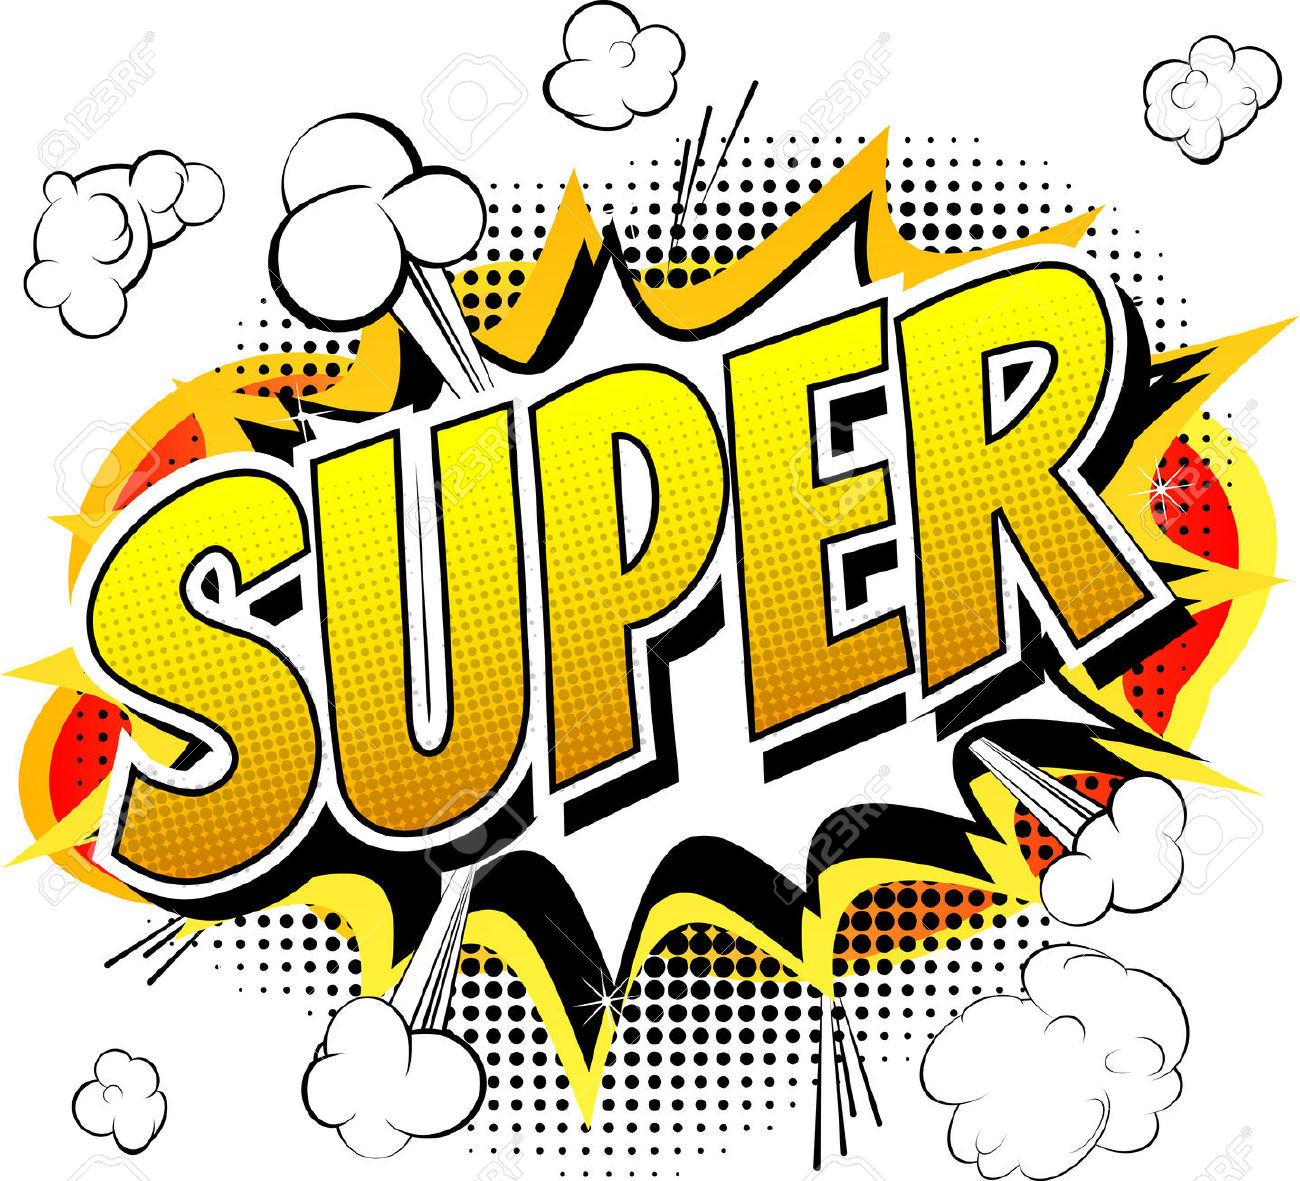 Free super word cliparts. Words clipart heroes